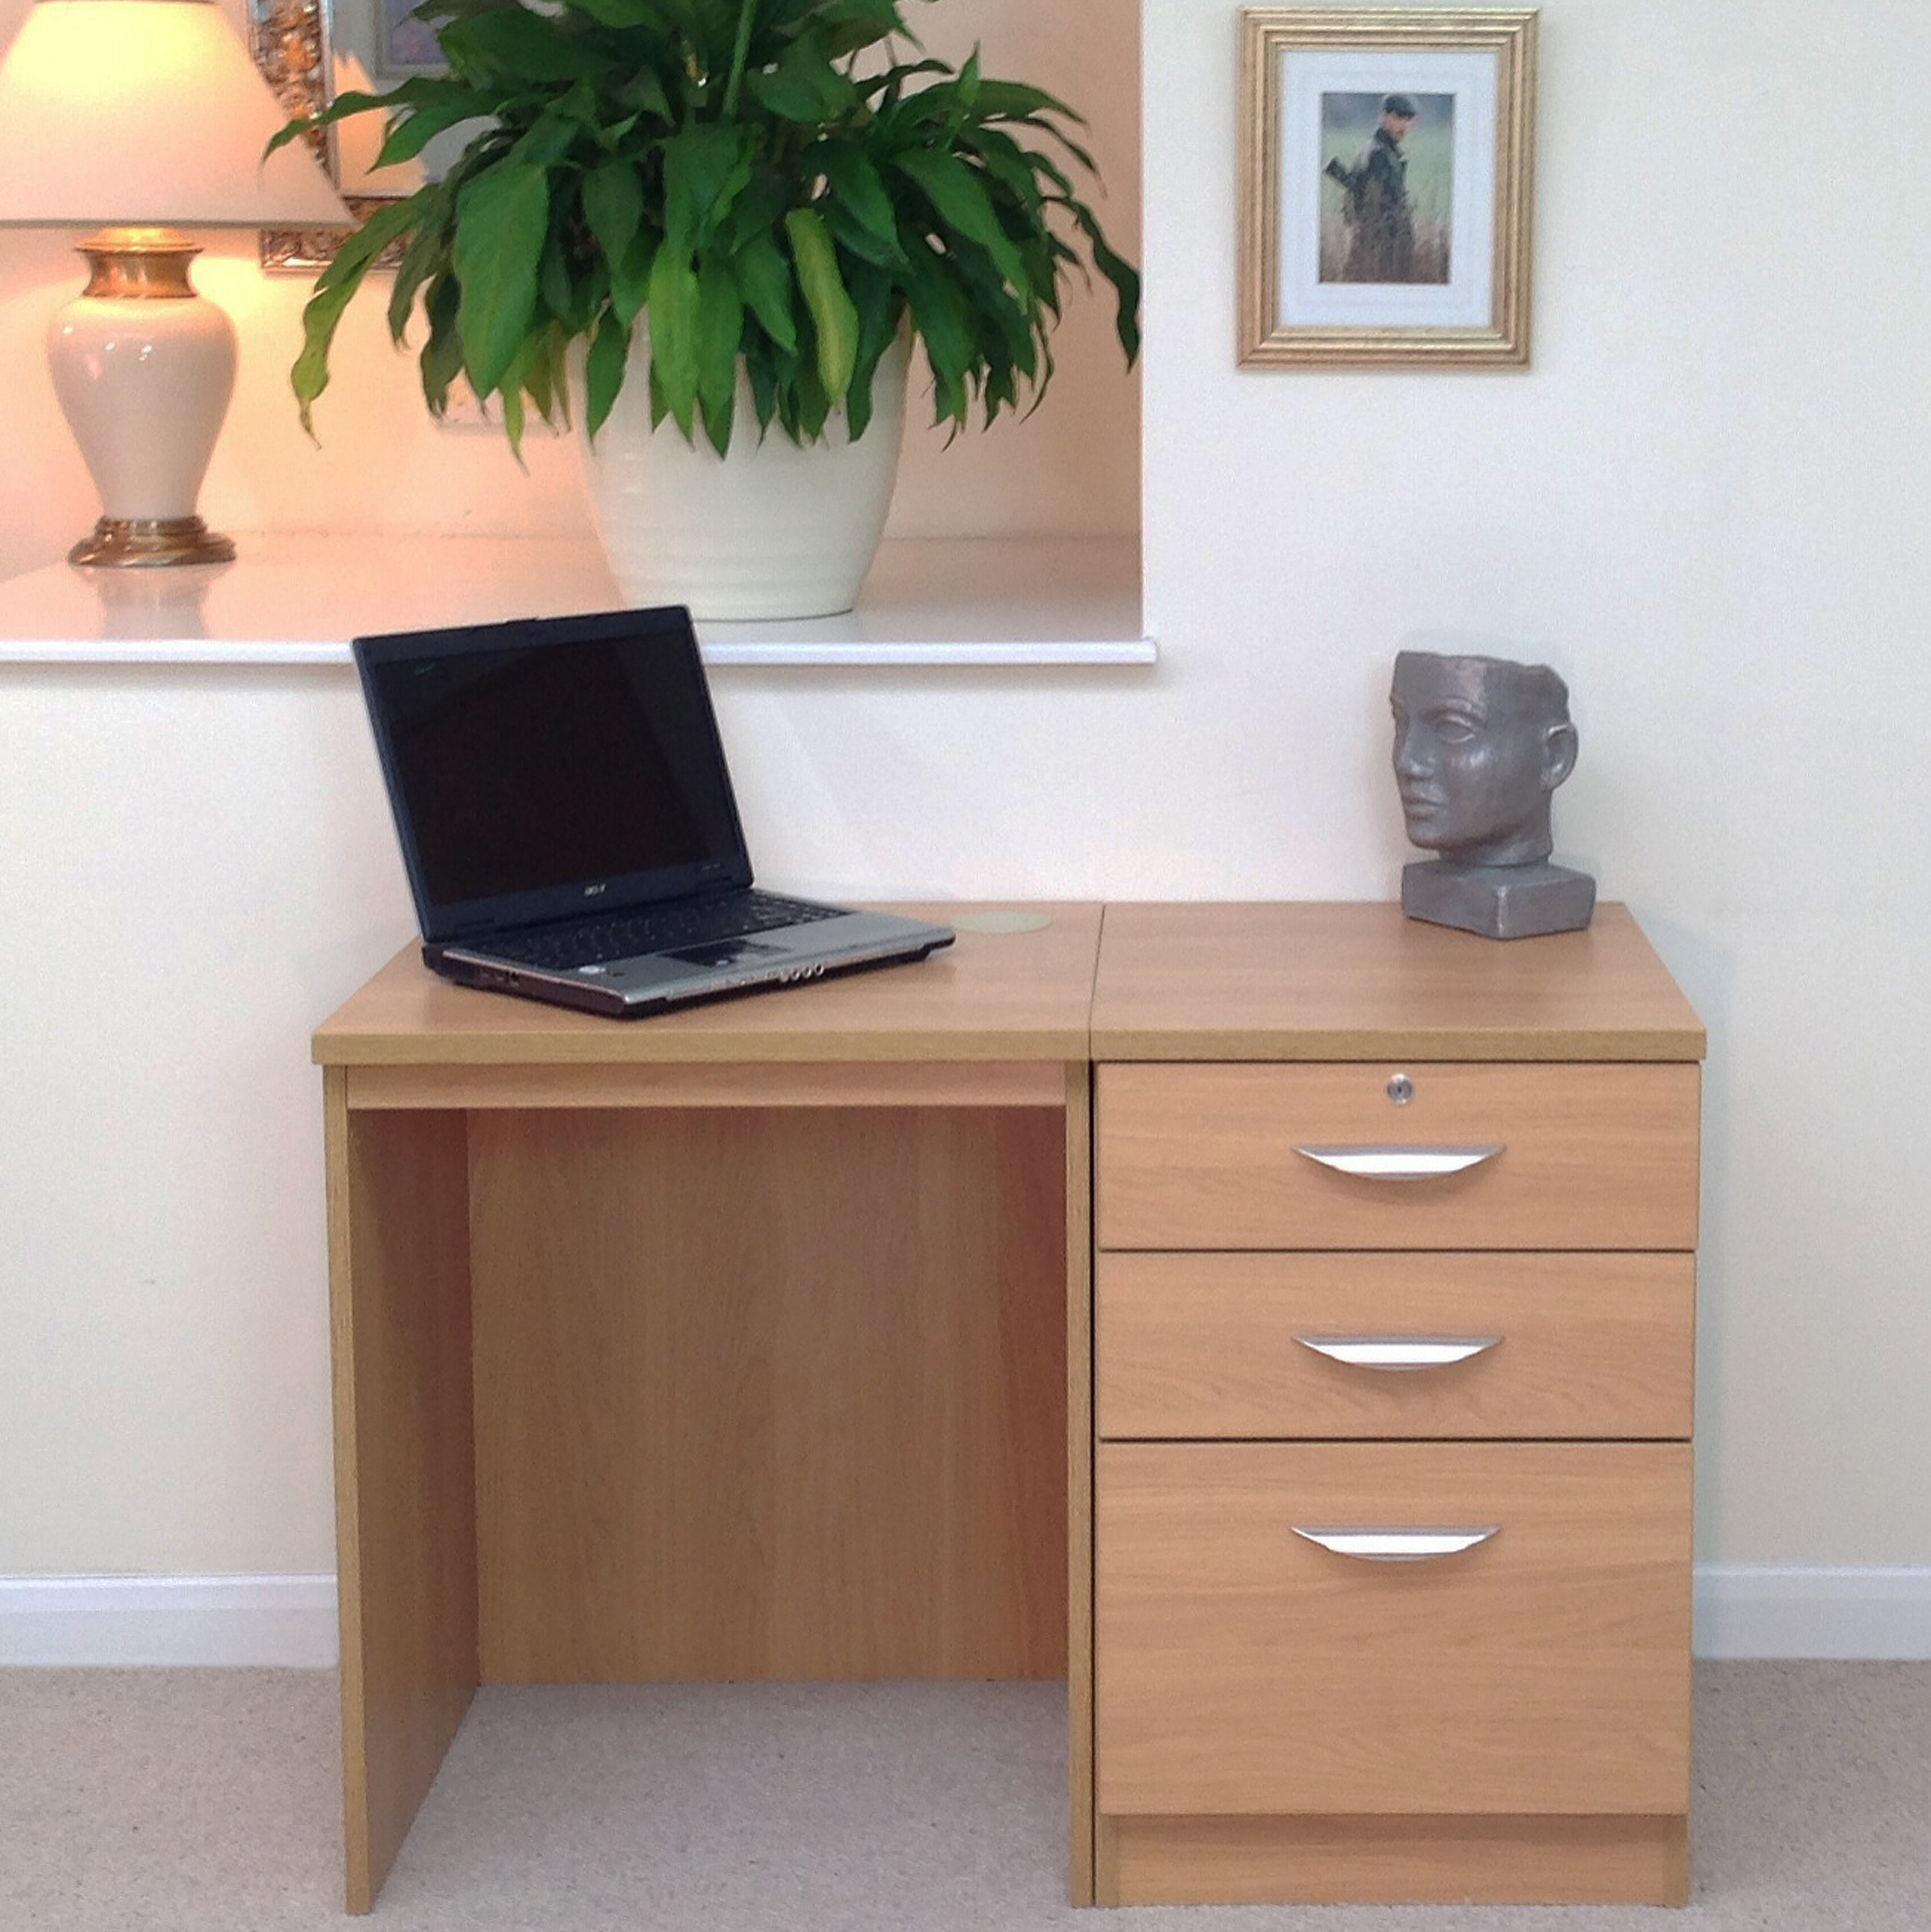 furniture diy home do drawers amazing cabinet desk l make office awesome filing for unused with intrigue drawer shaped